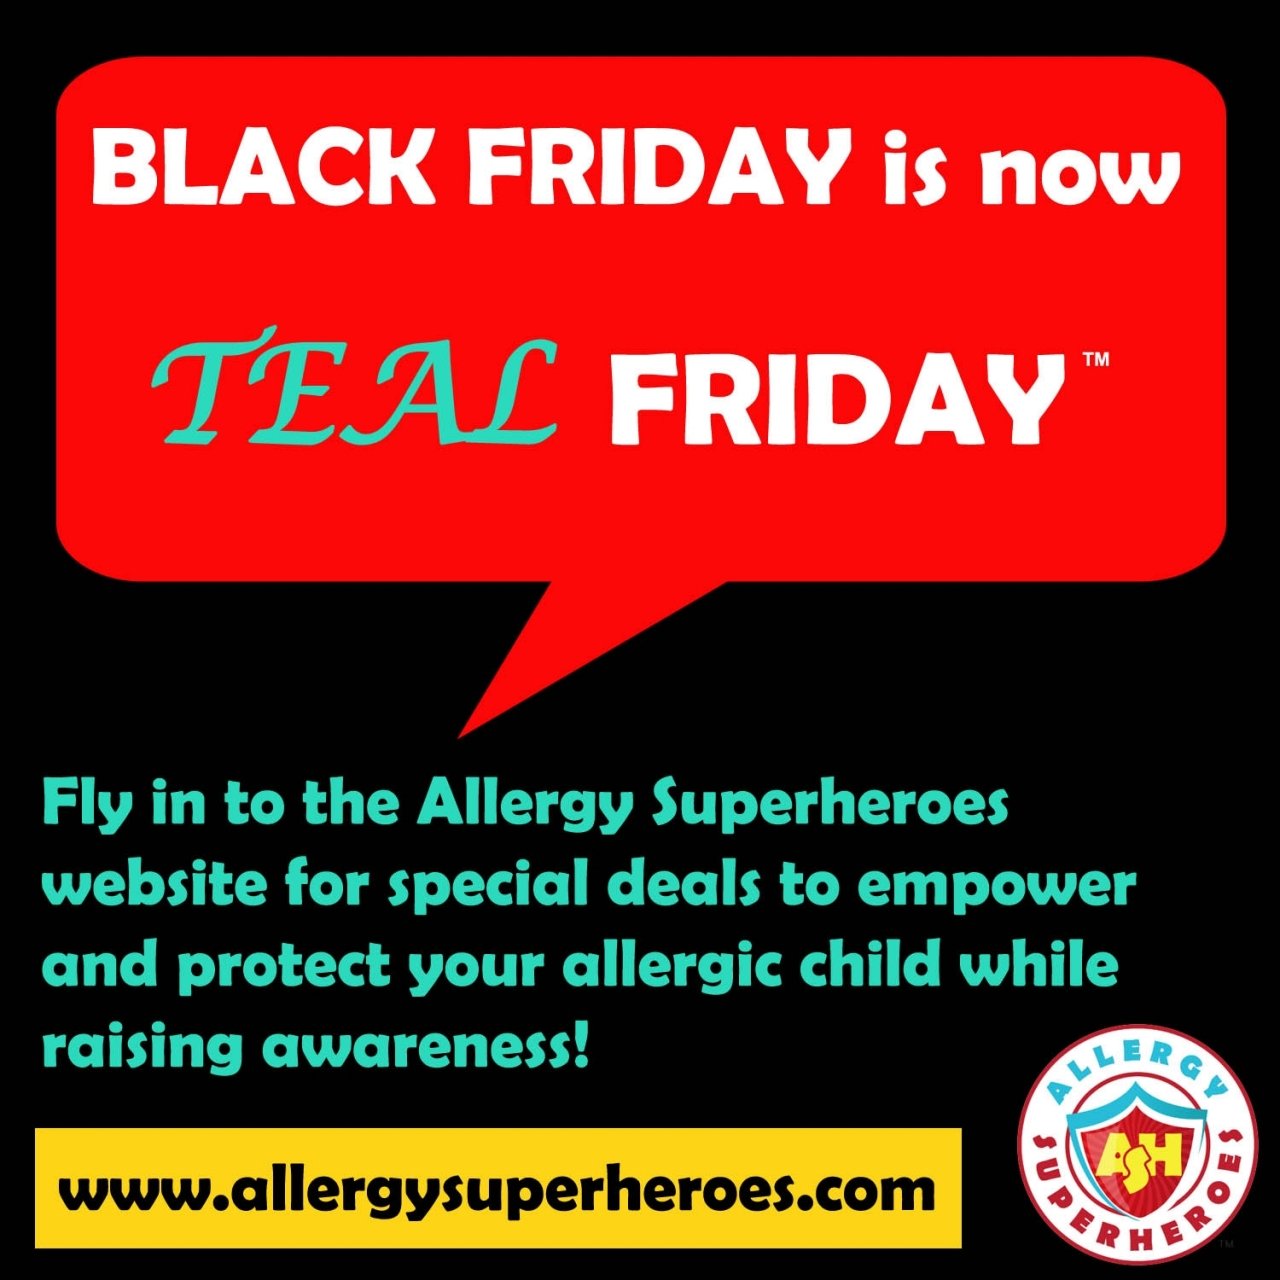 11 Black Friday is now Teal Friday Word Bubble by food Allergy Superheroes.jpg